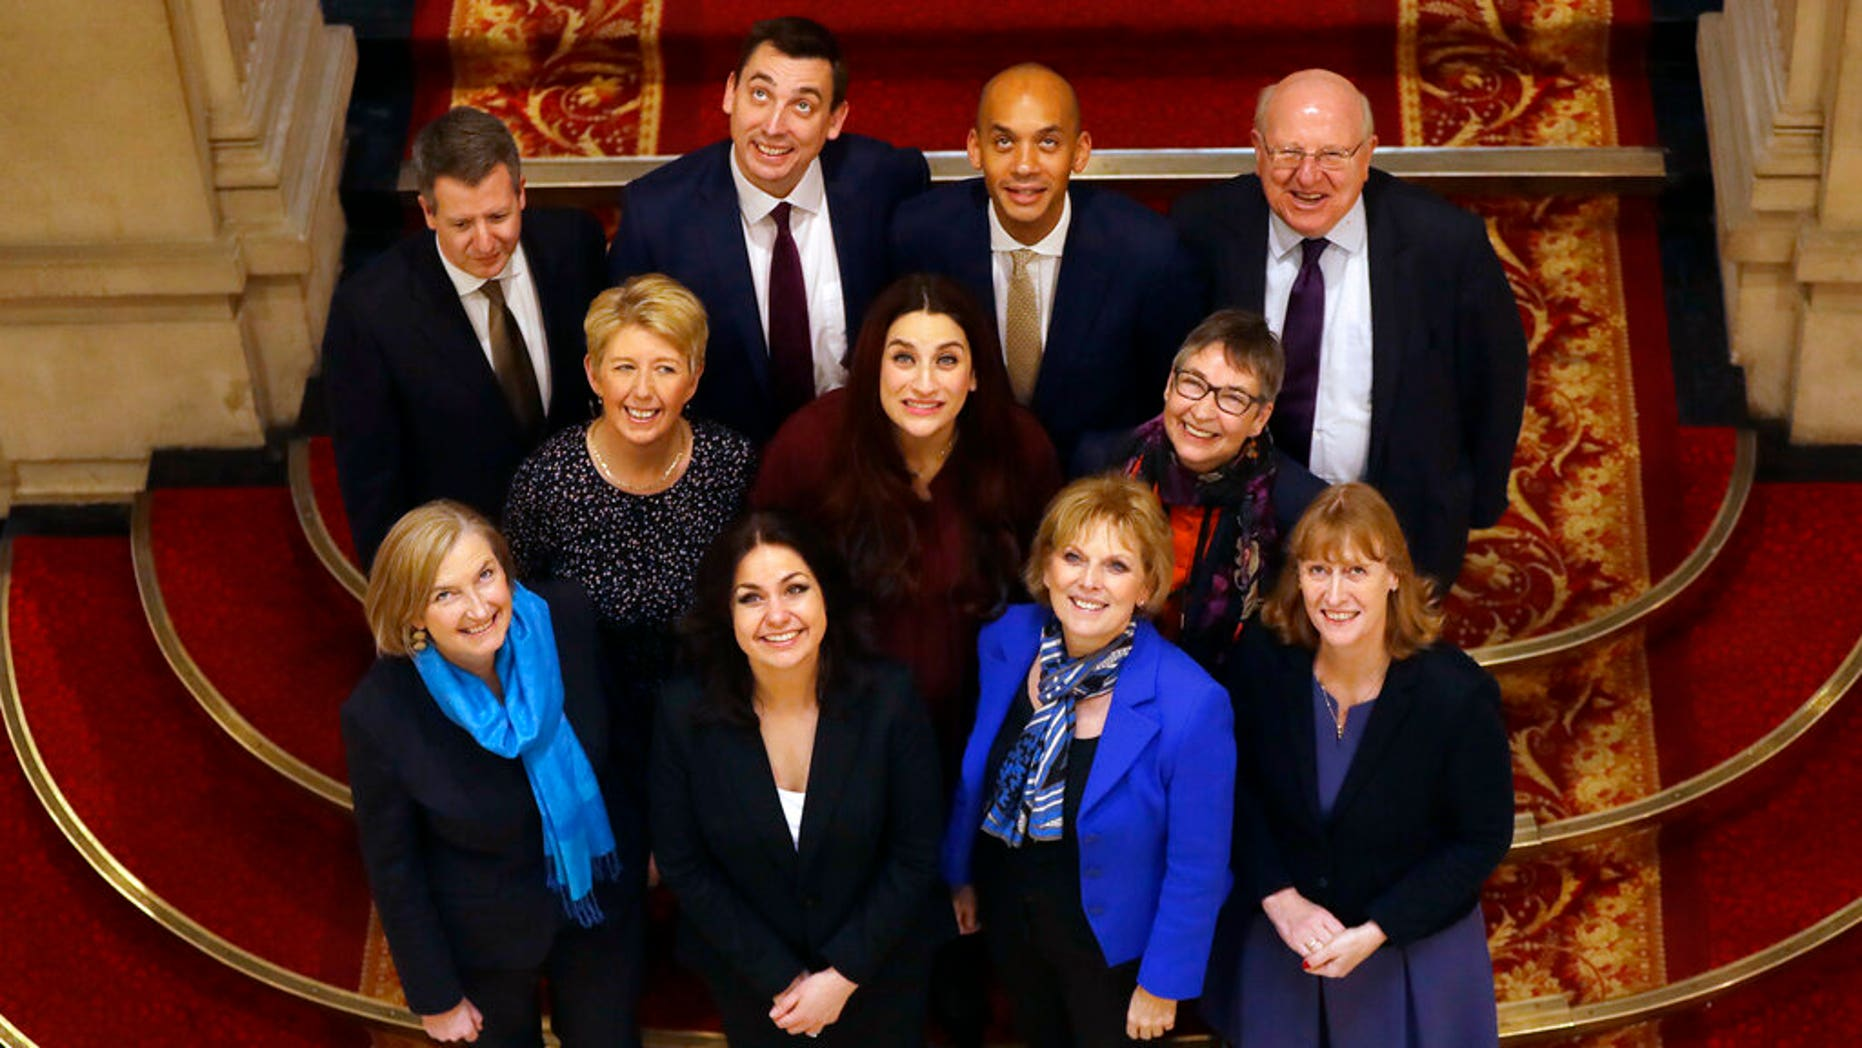 Eleven British politicians who have joined new political party 'The Independent Group' pose for a photograph after a press conference in Westminster in London, Wednesday, Feb. 20, 2019.